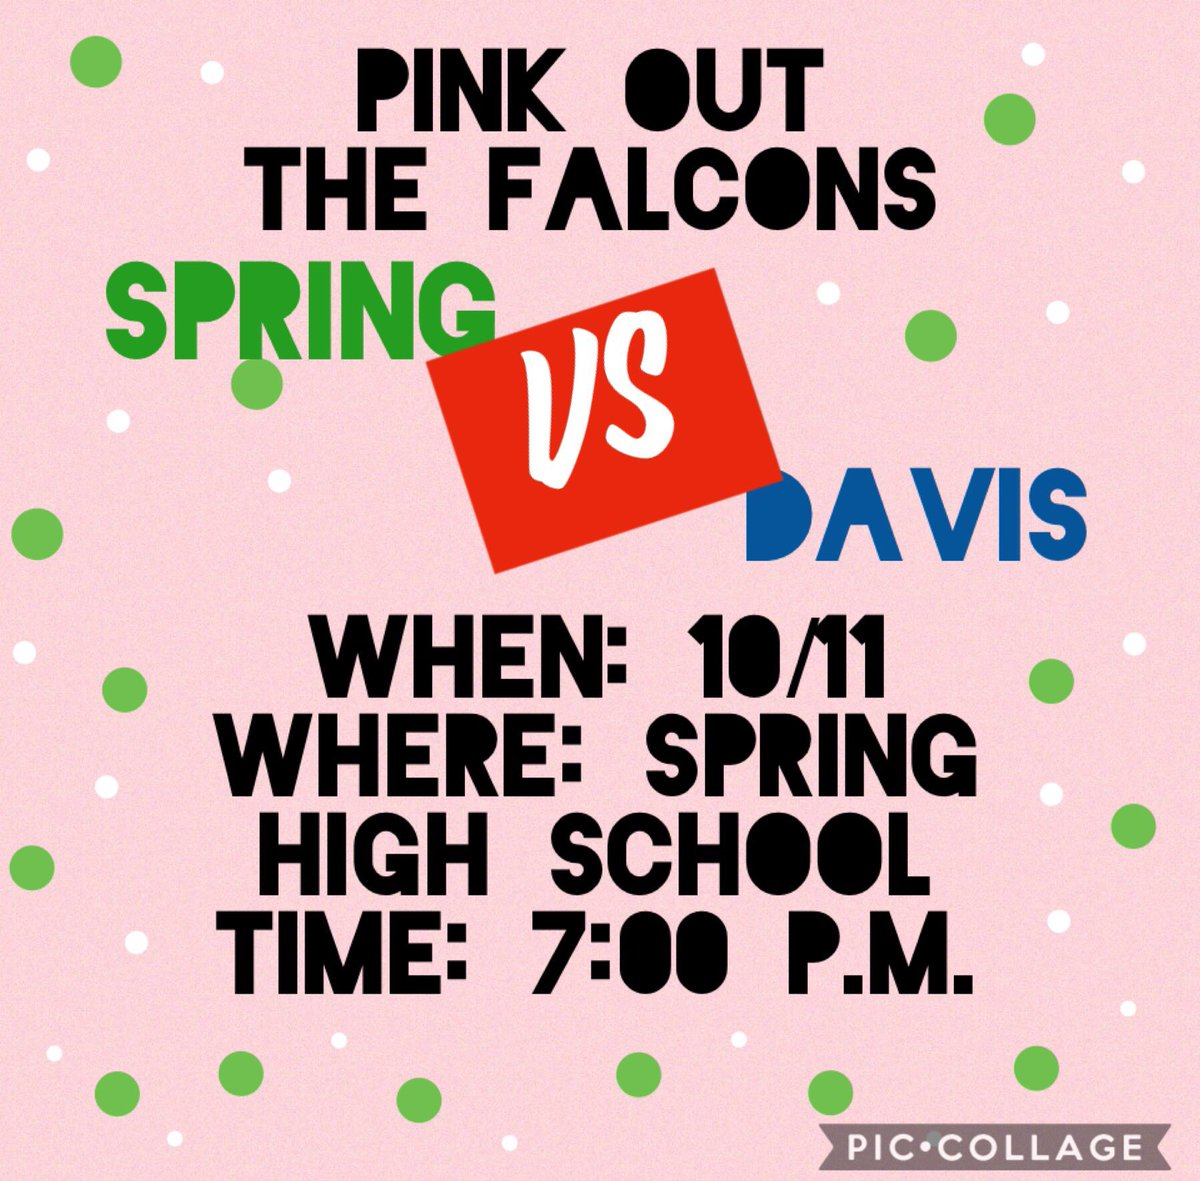 This friday ! To end our breast cancer awareness week we are going to pink out the stands! Let's come out and support the cause and our boys! 🦁💗 @stucolions @SPRINGHIGHLIONS #mbybob #classof2020 #seniorszn #breastcancerawareness https://t.co/5YR1aykTtH